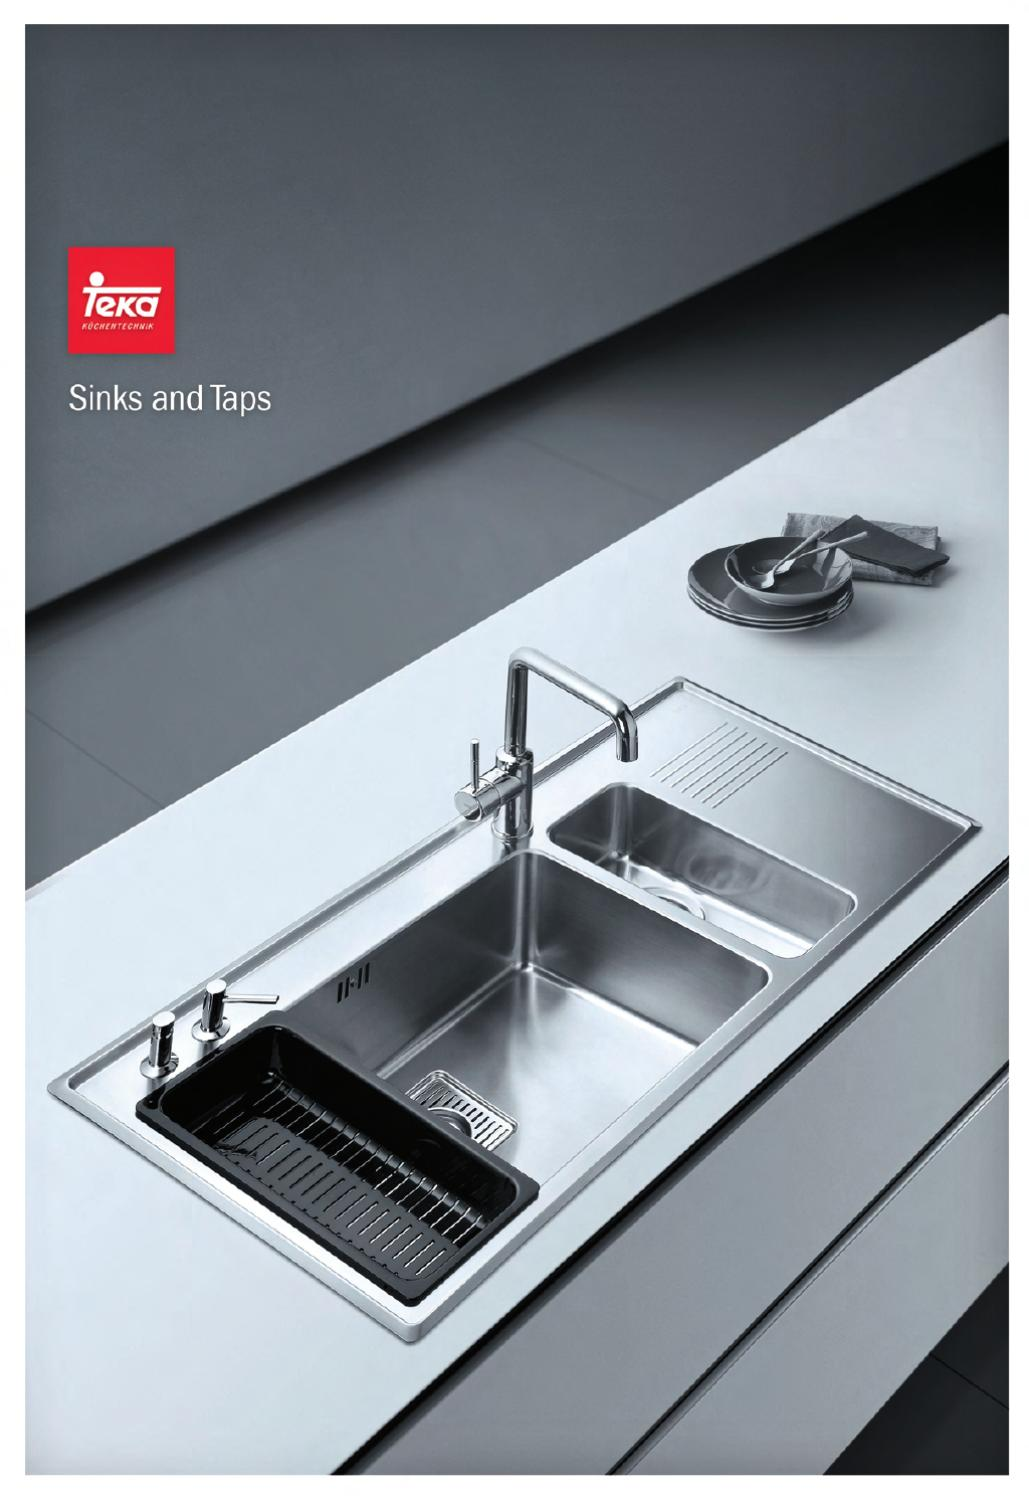 Teka Sink : Teka master sink catalogue by Adolfo ramirez - issuu